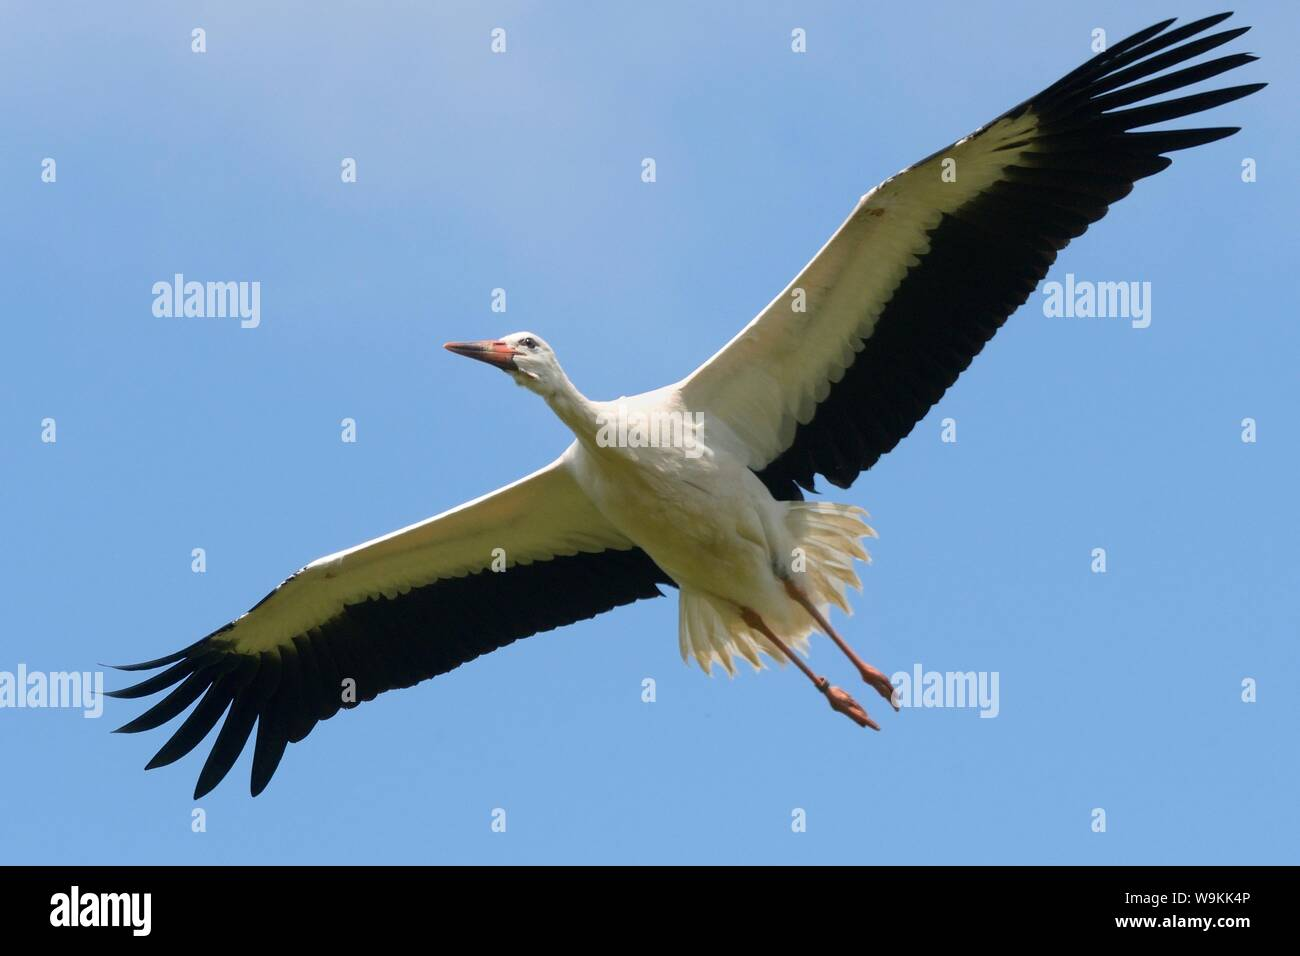 Captive reared juvenile White stork (Ciconia ciconia) in flight over the Knepp Estate soon after release, Sussex, UK, August 2019. Stock Photo